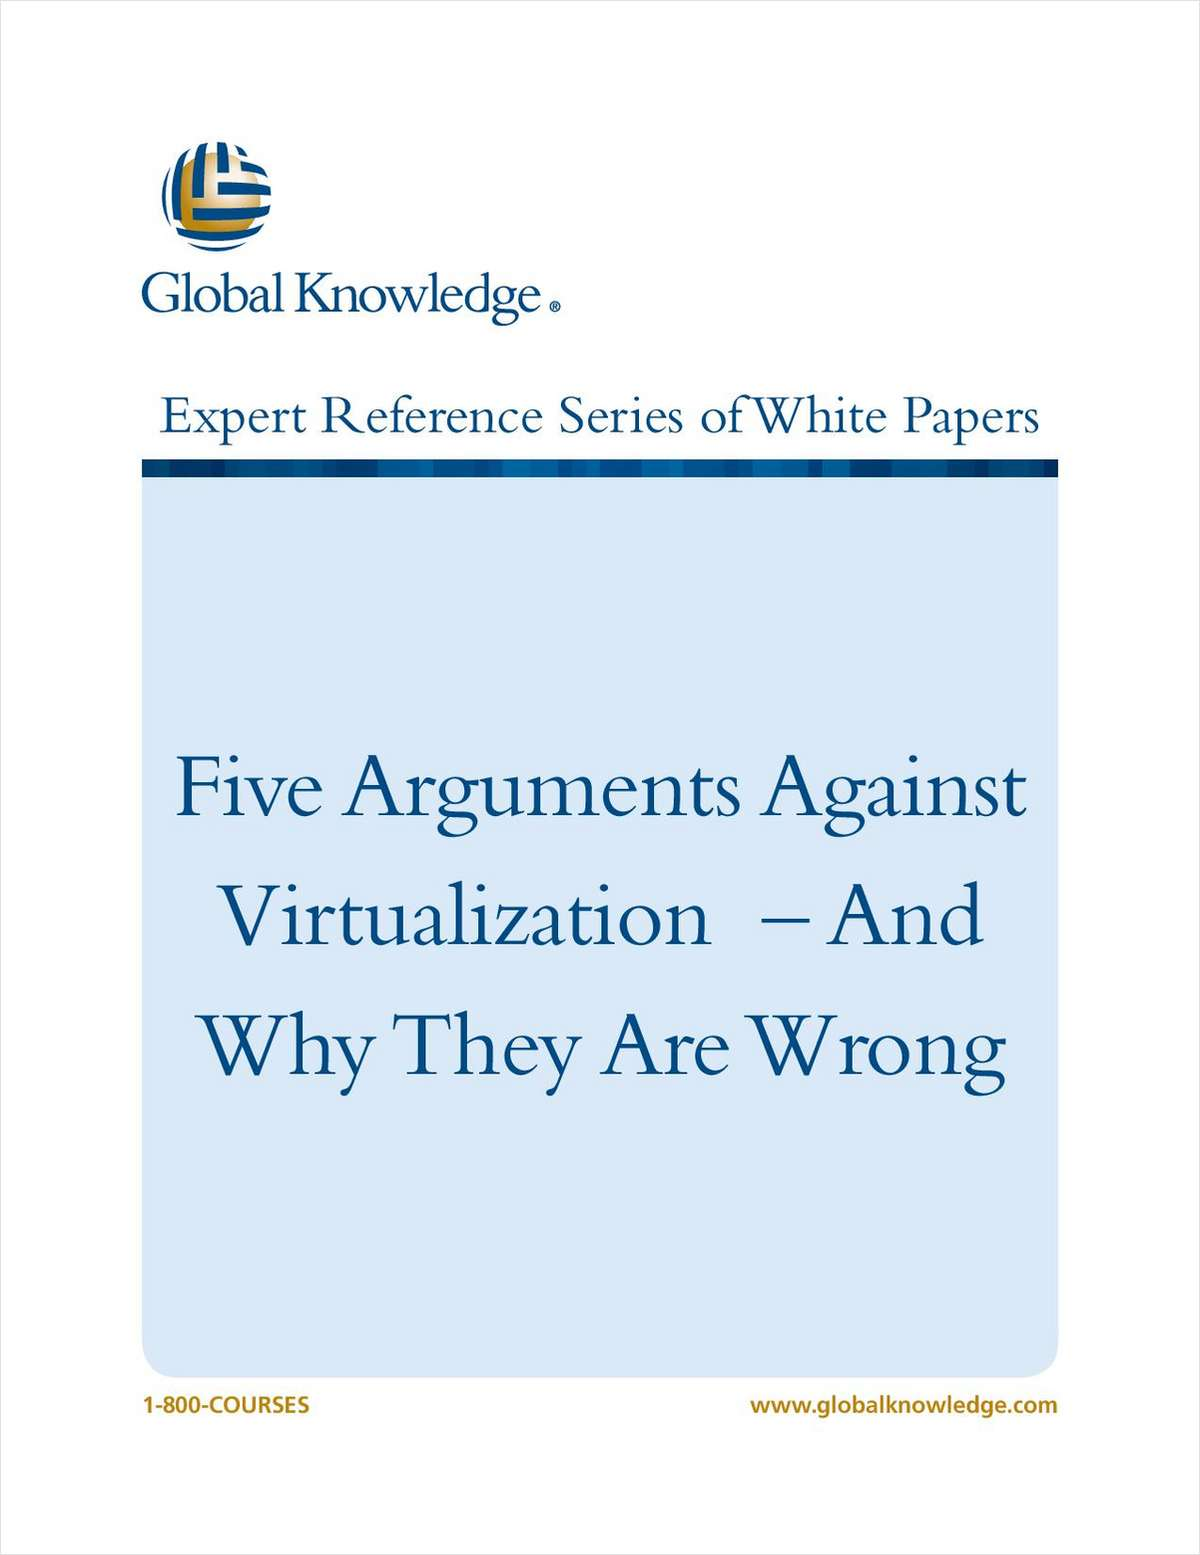 Five Arguments Against Virtualization - And Why They Are Wrong